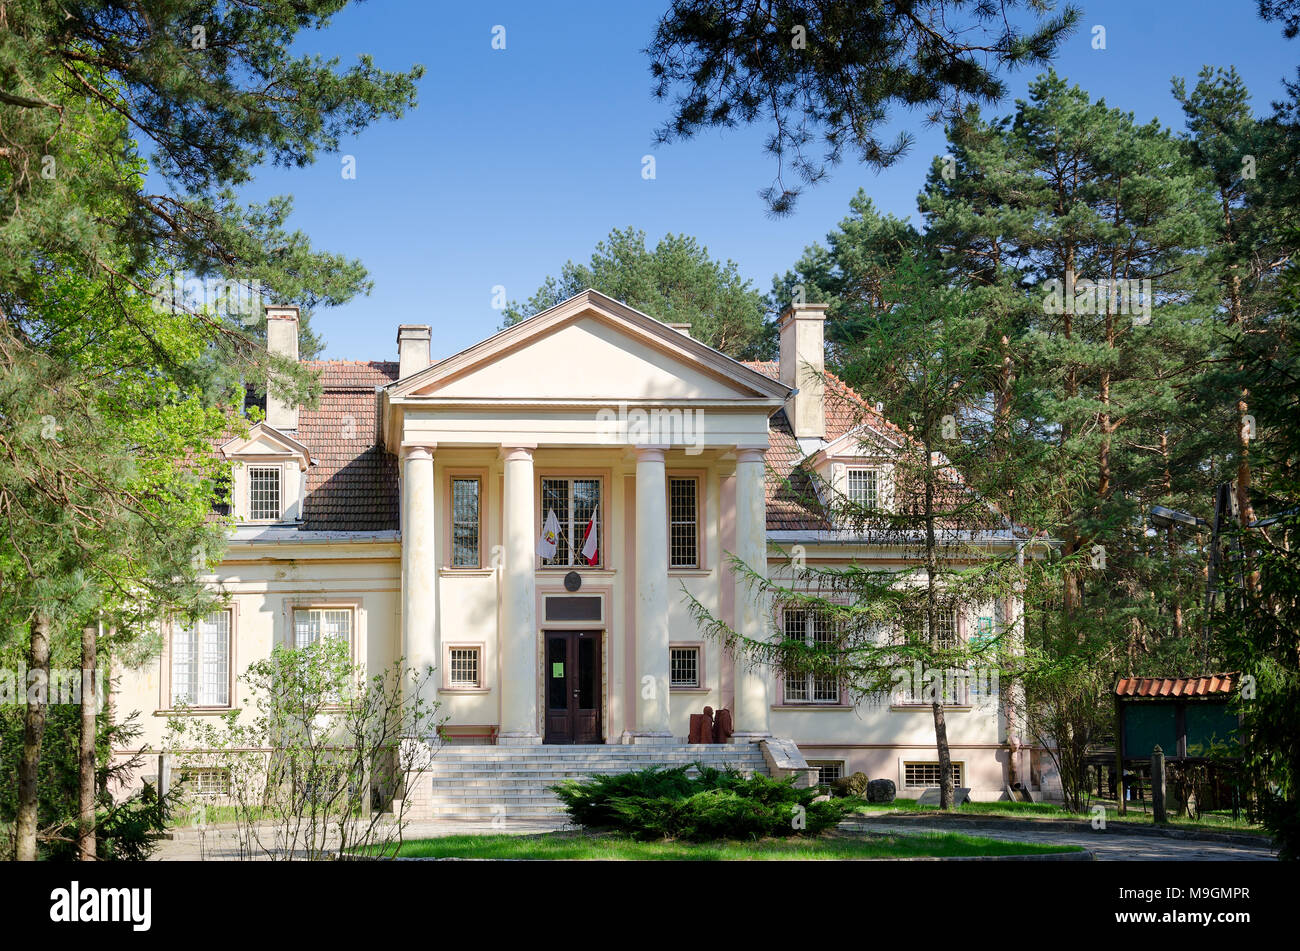 Museum of the Otwock region located in manor house stylized villa built in 1954 for Jakub Berman, prominent member of the Polish United Workers' Party - Stock Image